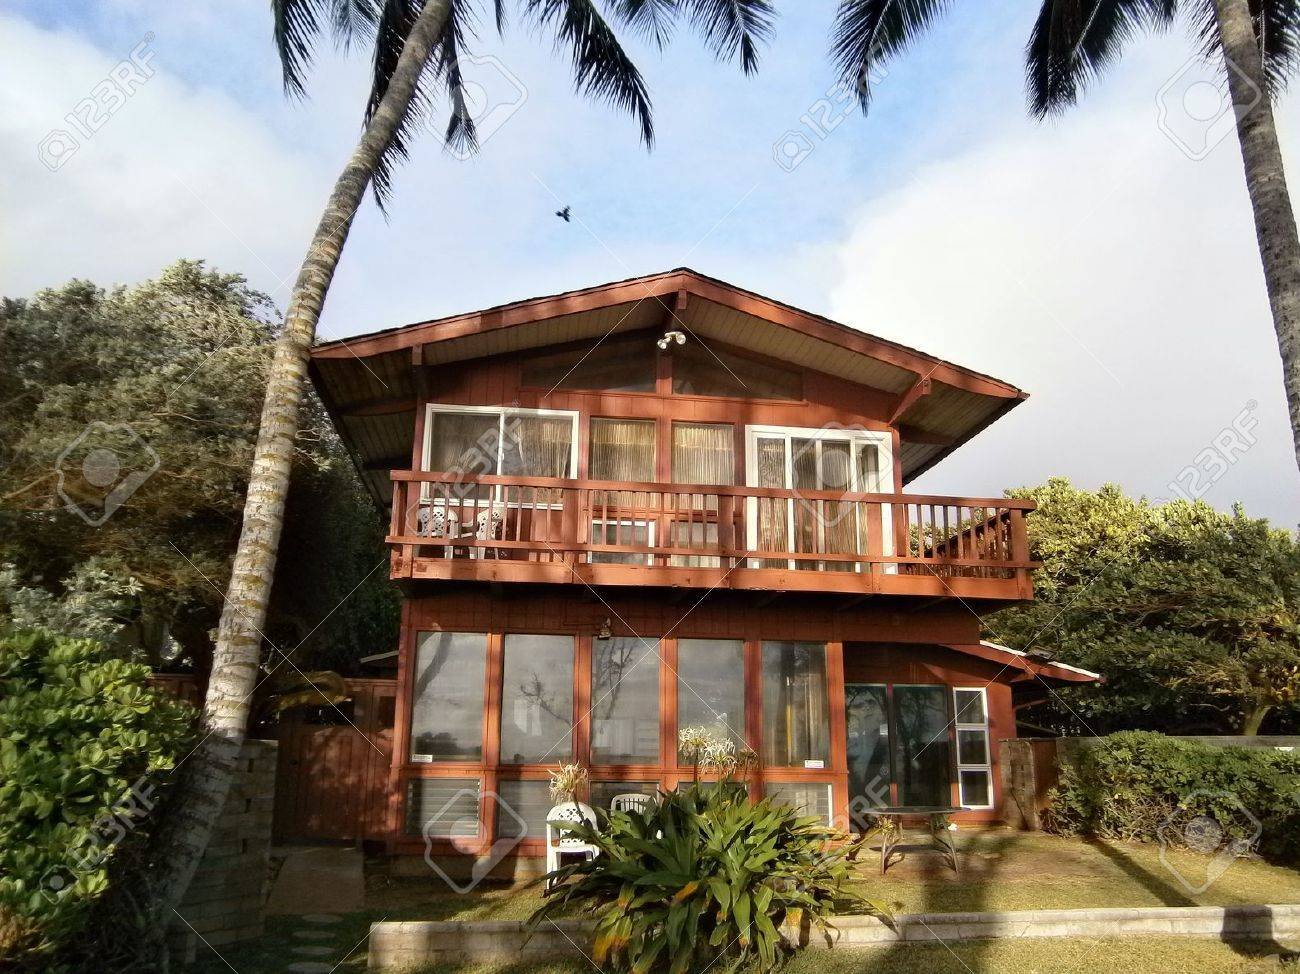 Engrossing Tall Coconut Trees On Hawaii Two Story House Stock Photo Two Story Red Beach House Bird Flying Two Story Red Beach House Spanish Two Story Houseboat Tall Coconut Trees On curbed Two Story House